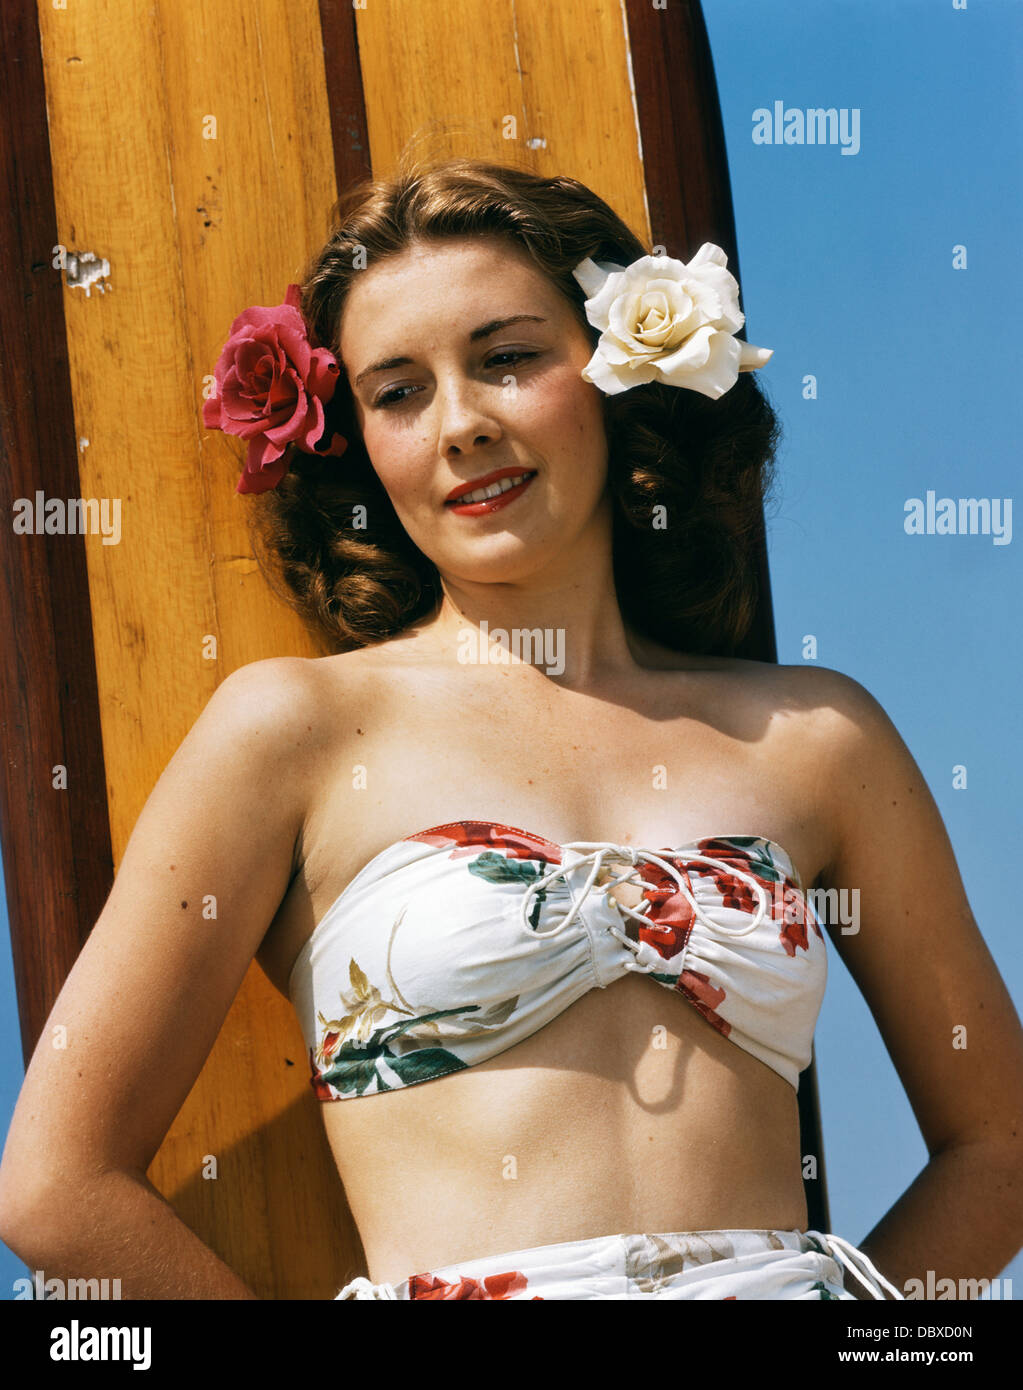 1940s 1950s PORTRAIT WOMAN WEARING FLORAL PRINT BIKINI BATHING SUIT AND ROSES IN HAIR LEANING AGAINST SURFBOARD - Stock Image